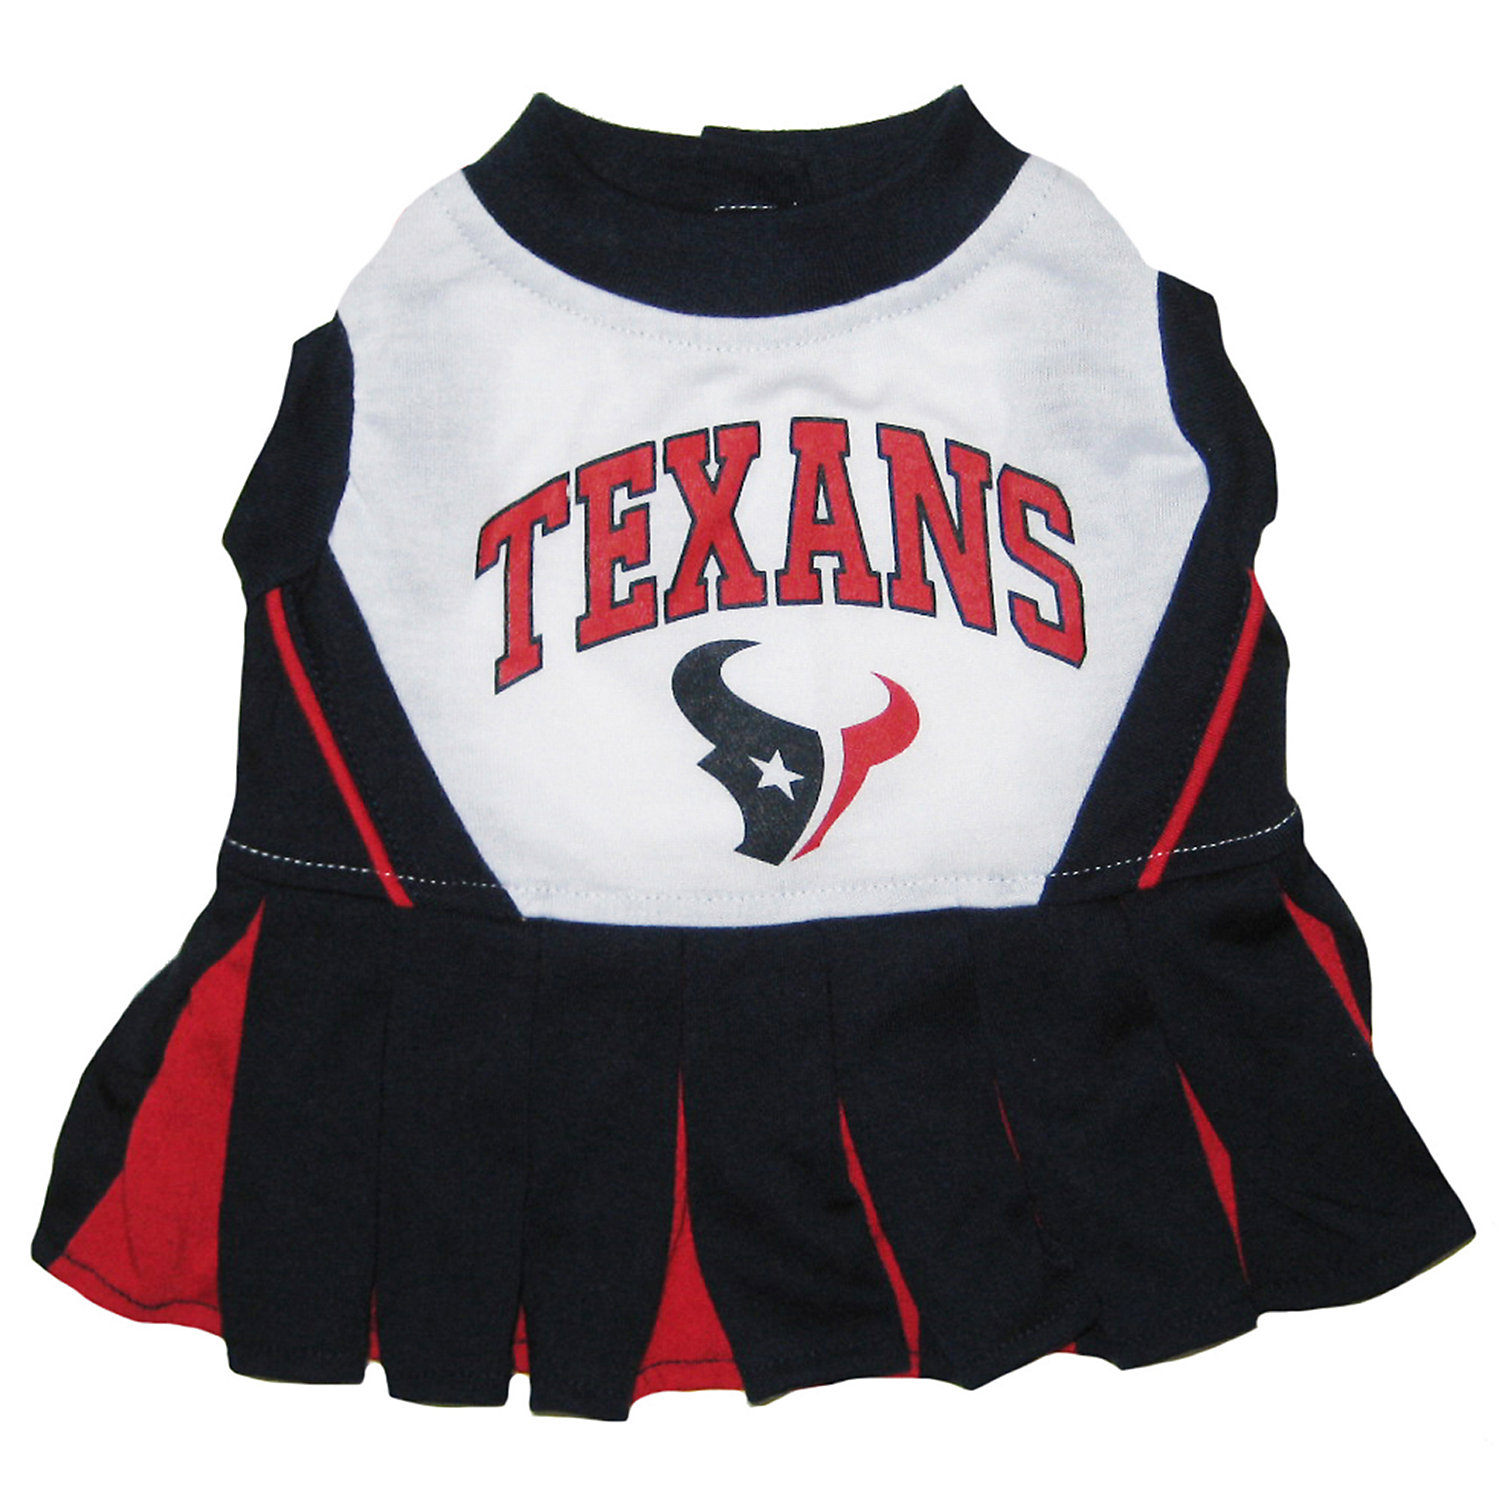 Pets First Houston Texans Nfl Cheerleader Outfit Small Blue